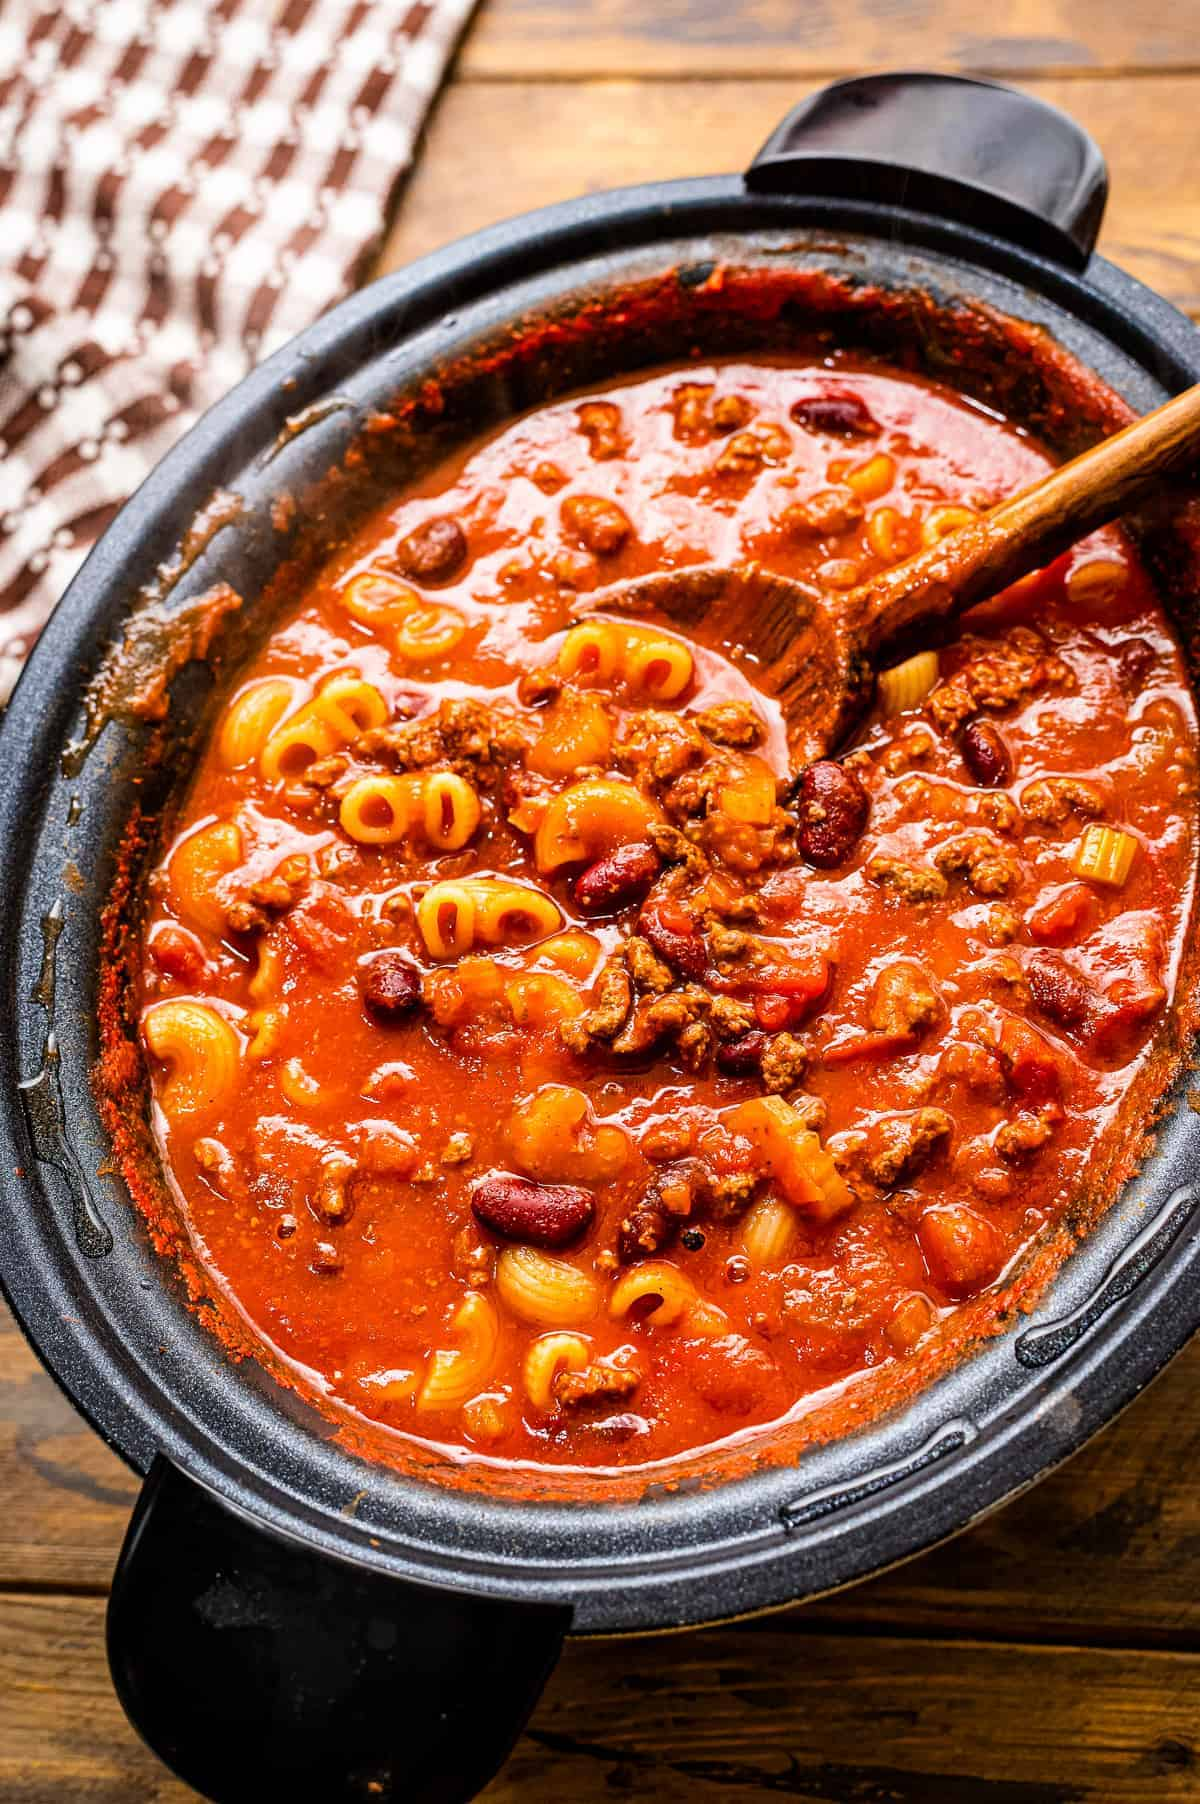 Crock Pot with Chili Mac in it